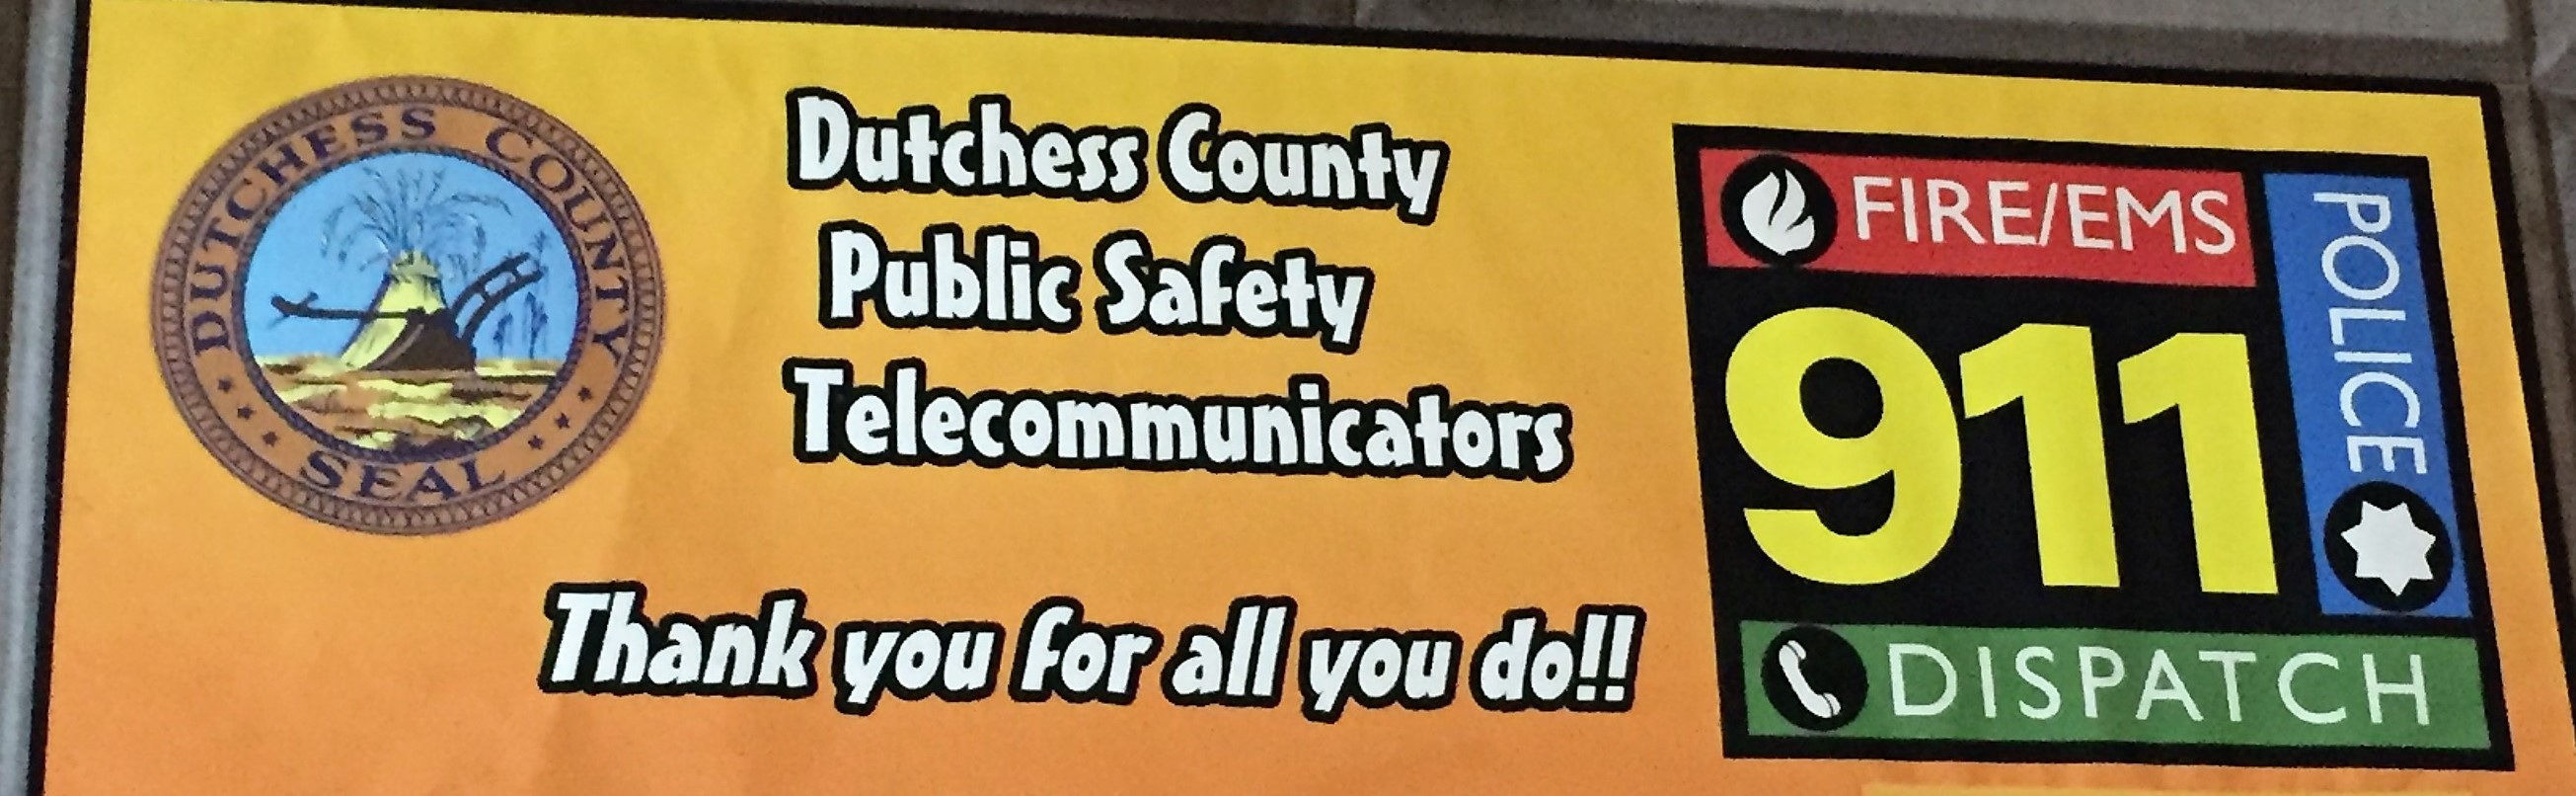 """Photo of a banner: """"Dutchess County Public Safety Telecommunicators - Thank you for all you do!  Fire, EMS, Police, Dispatch"""